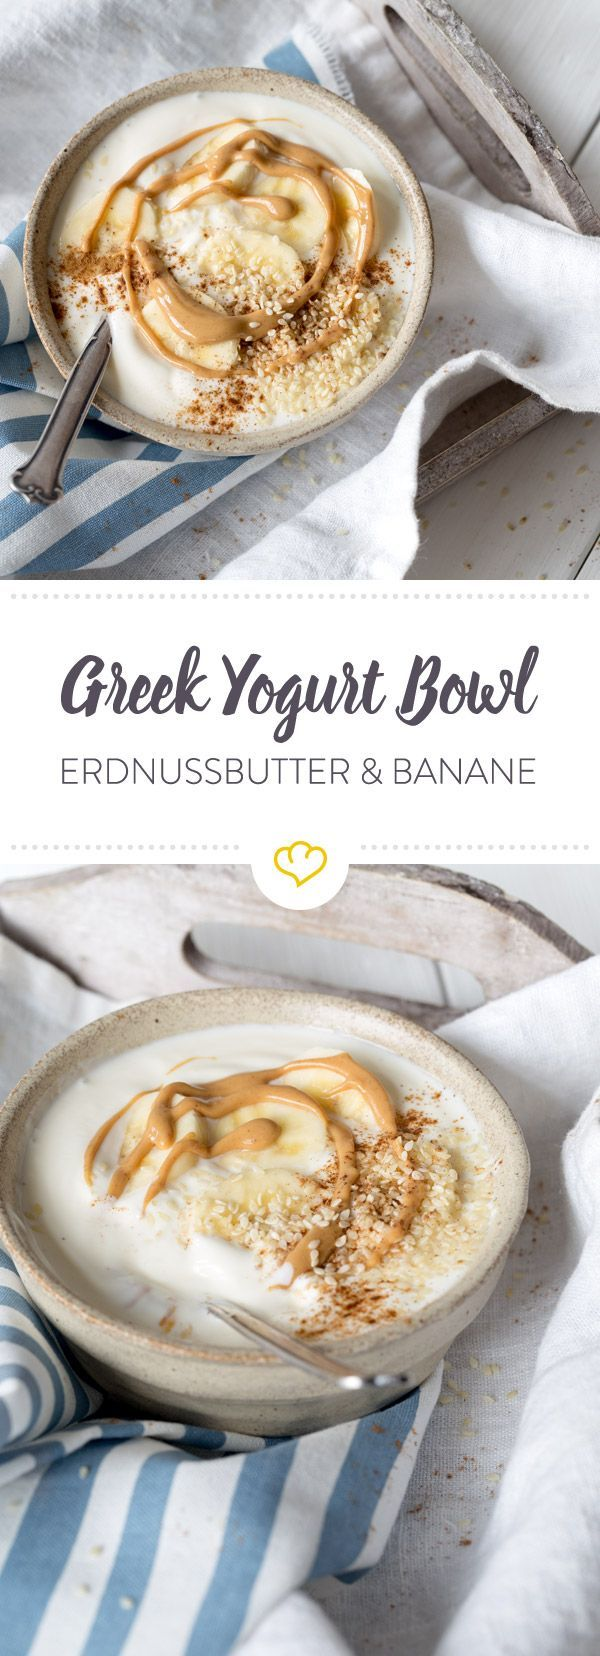 Greek Yogurt Bowl mit Erdnussbutter und Bananen #peanutrecipes